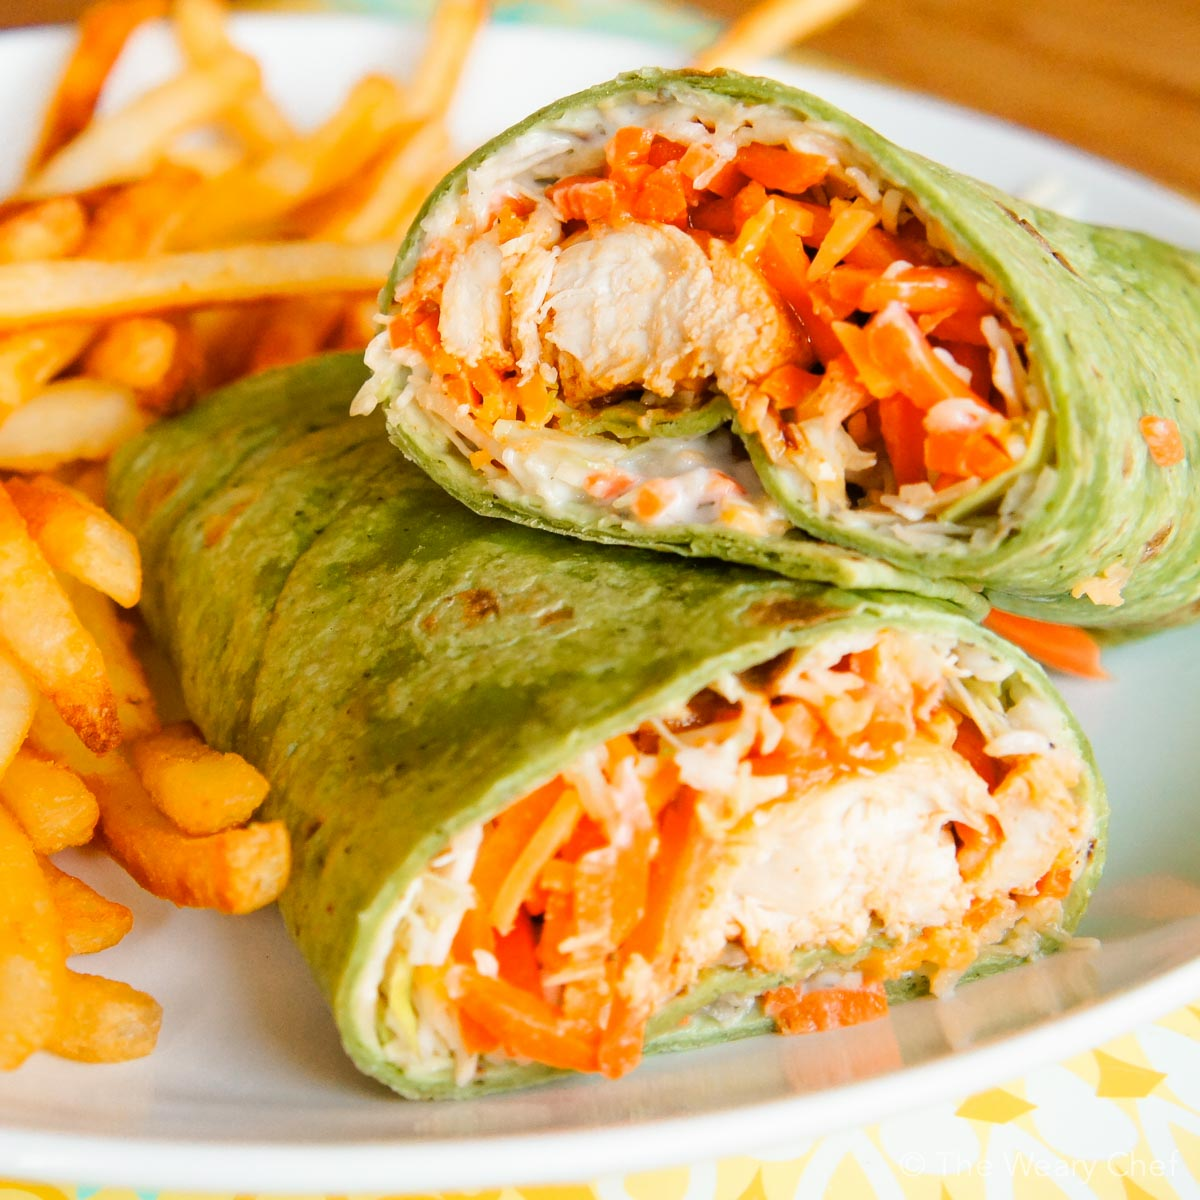 Buffalo Chicken Wraps: A fun and tasty dinner idea! - The Weary Chef